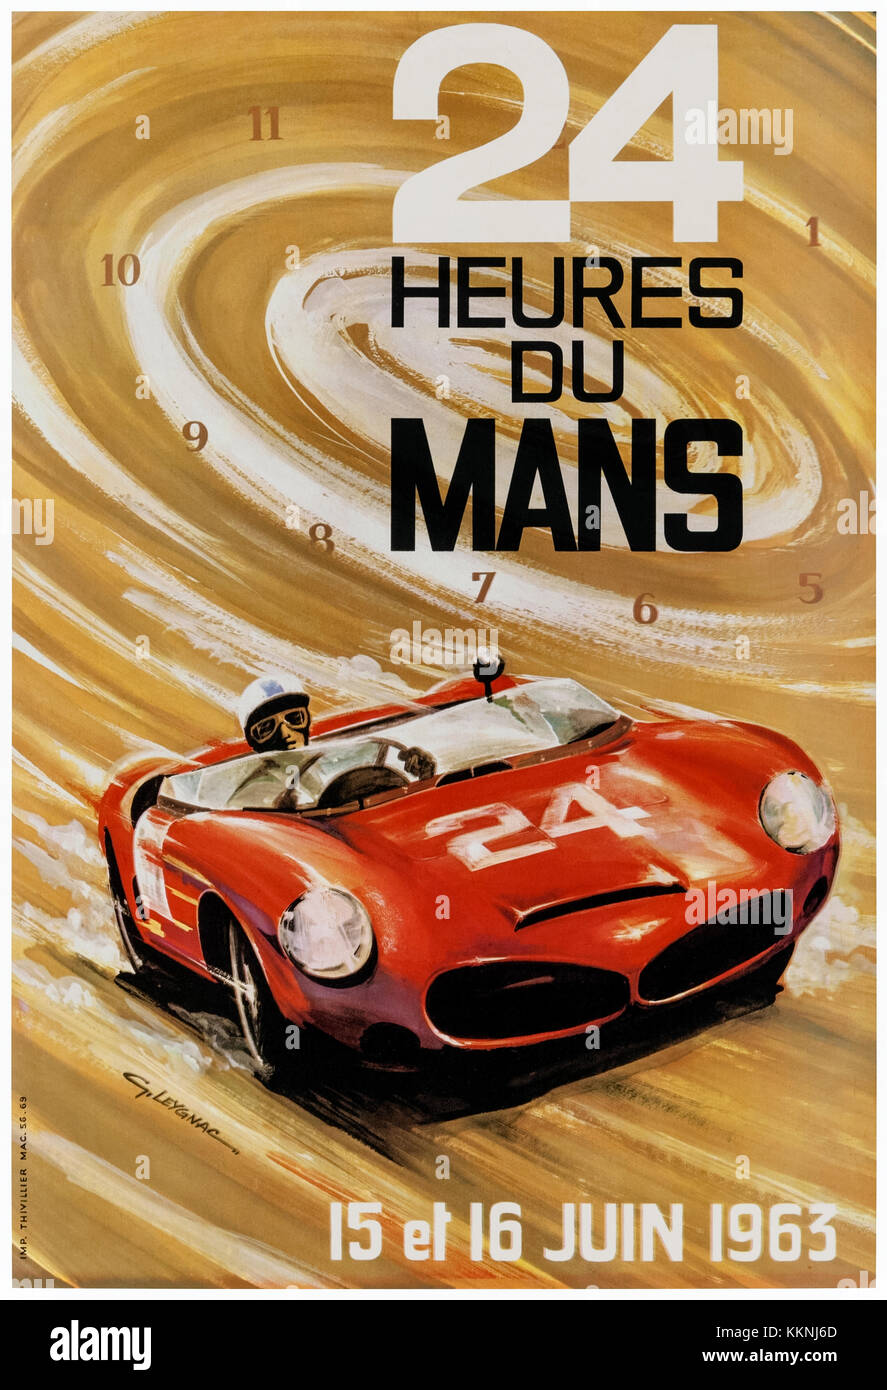 '24 Heures du Mans 15 et 16 Juin 1963' poster illustrated by G. Laygnac and showing a Ferrari 330 TRI/LM Spyder - Stock Image